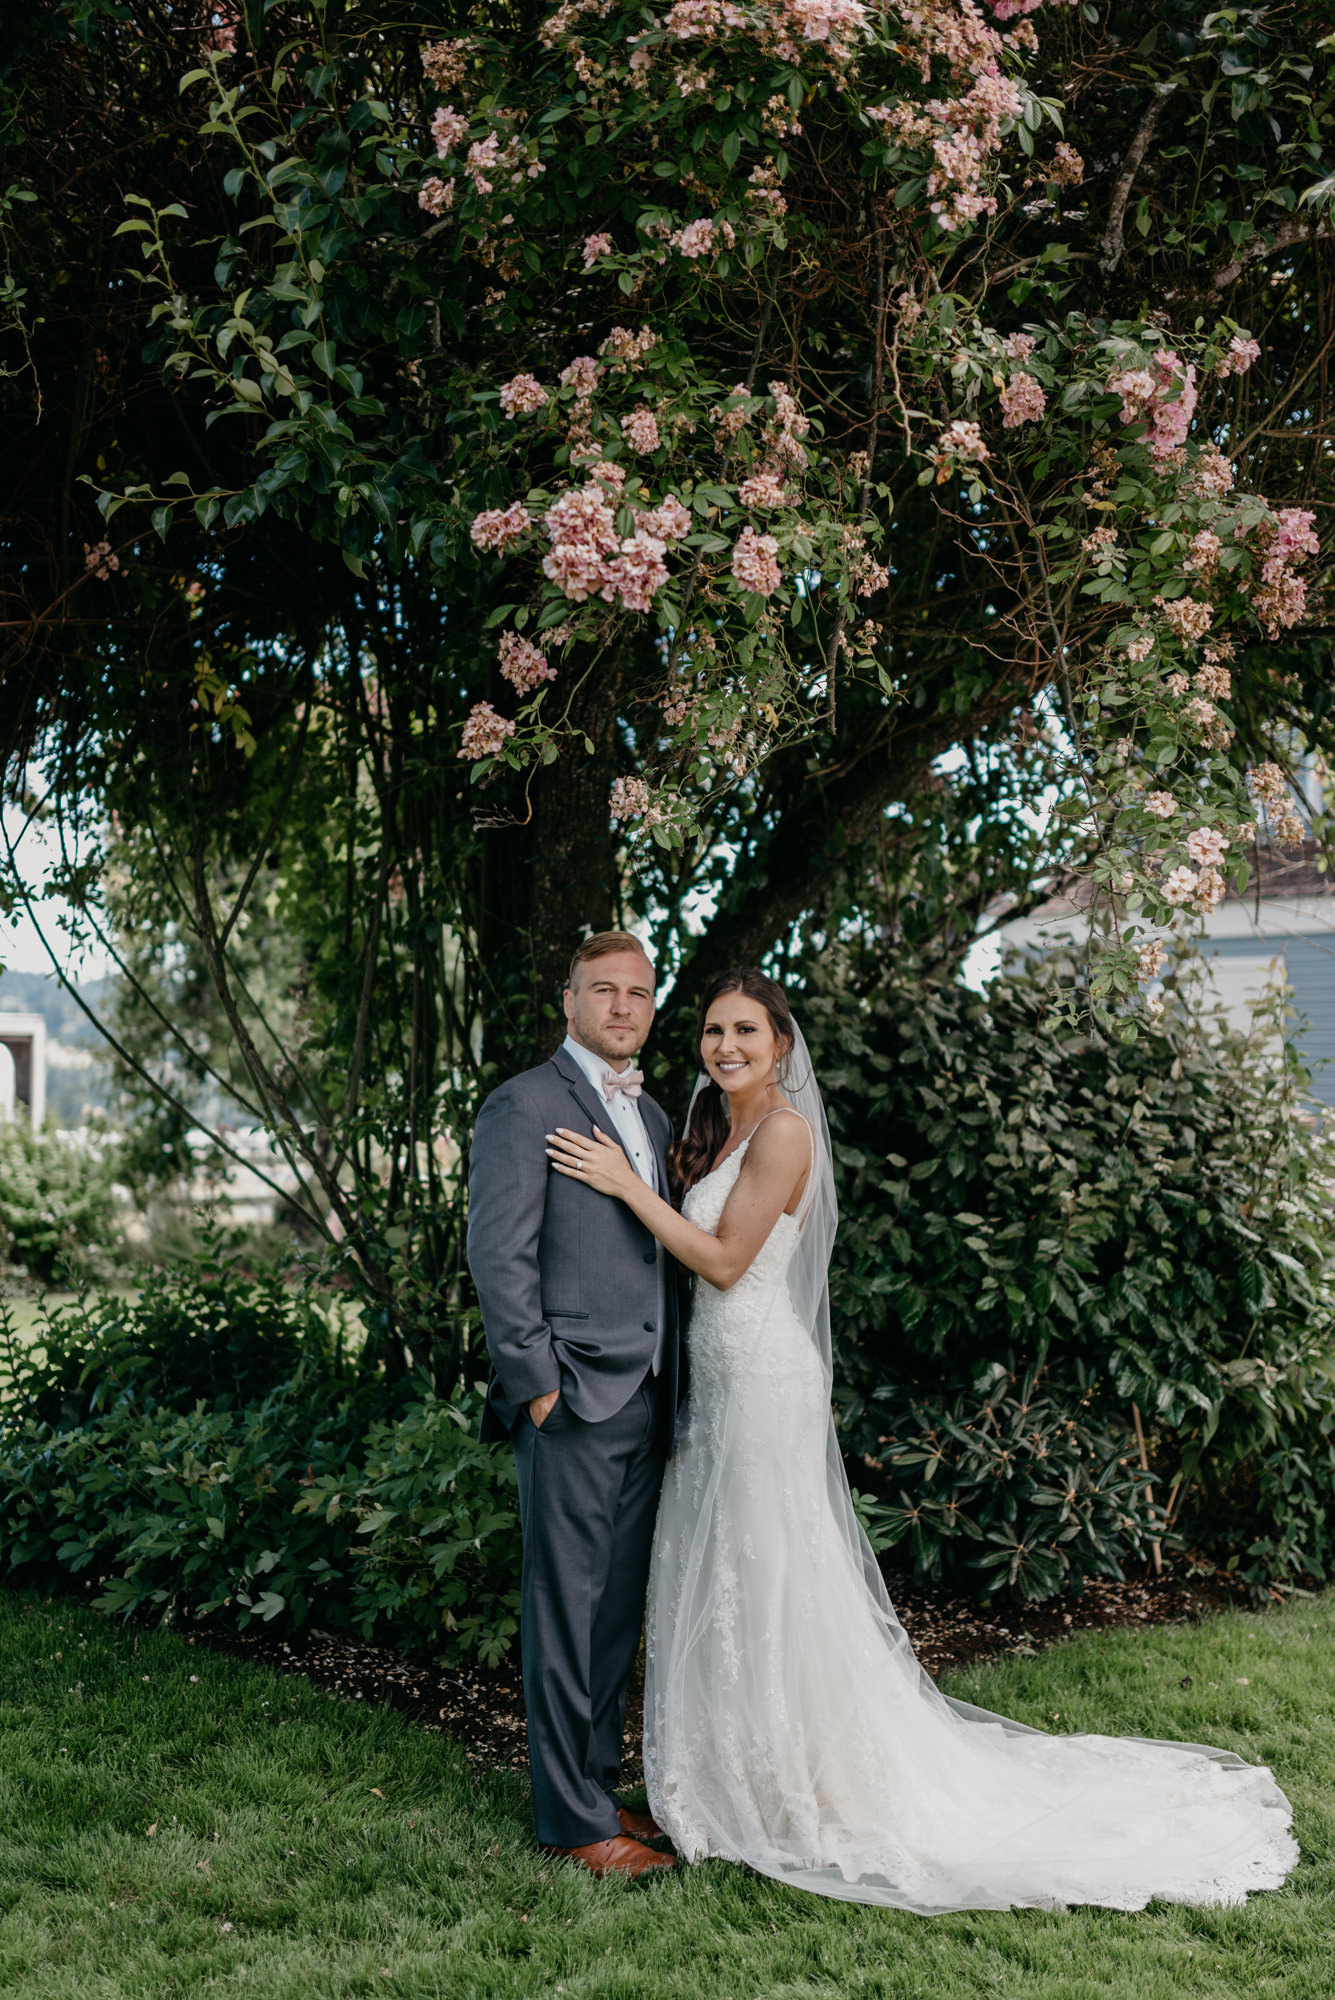 75-lake-oswego-wedding-portland-couple-rose-tree.jpg